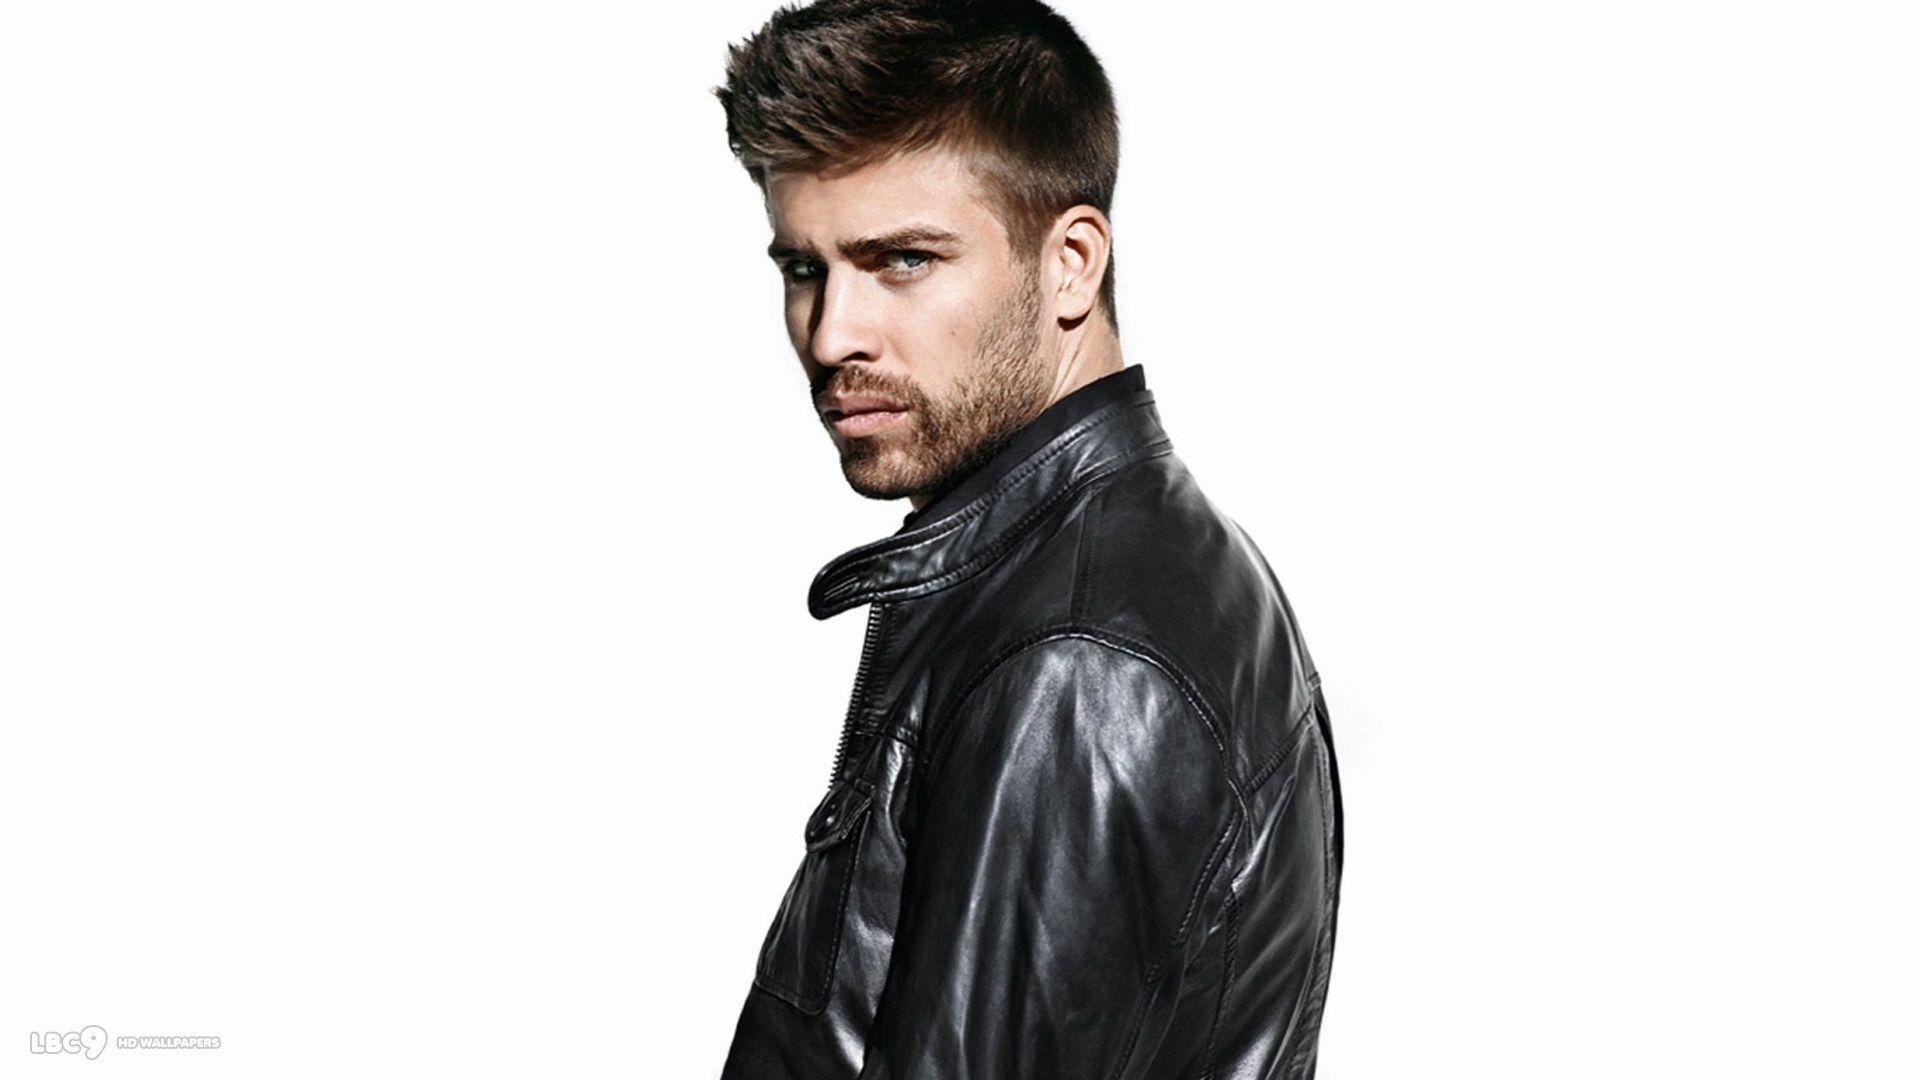 Gerard Pique Soccer player Pictures and Wallpapers